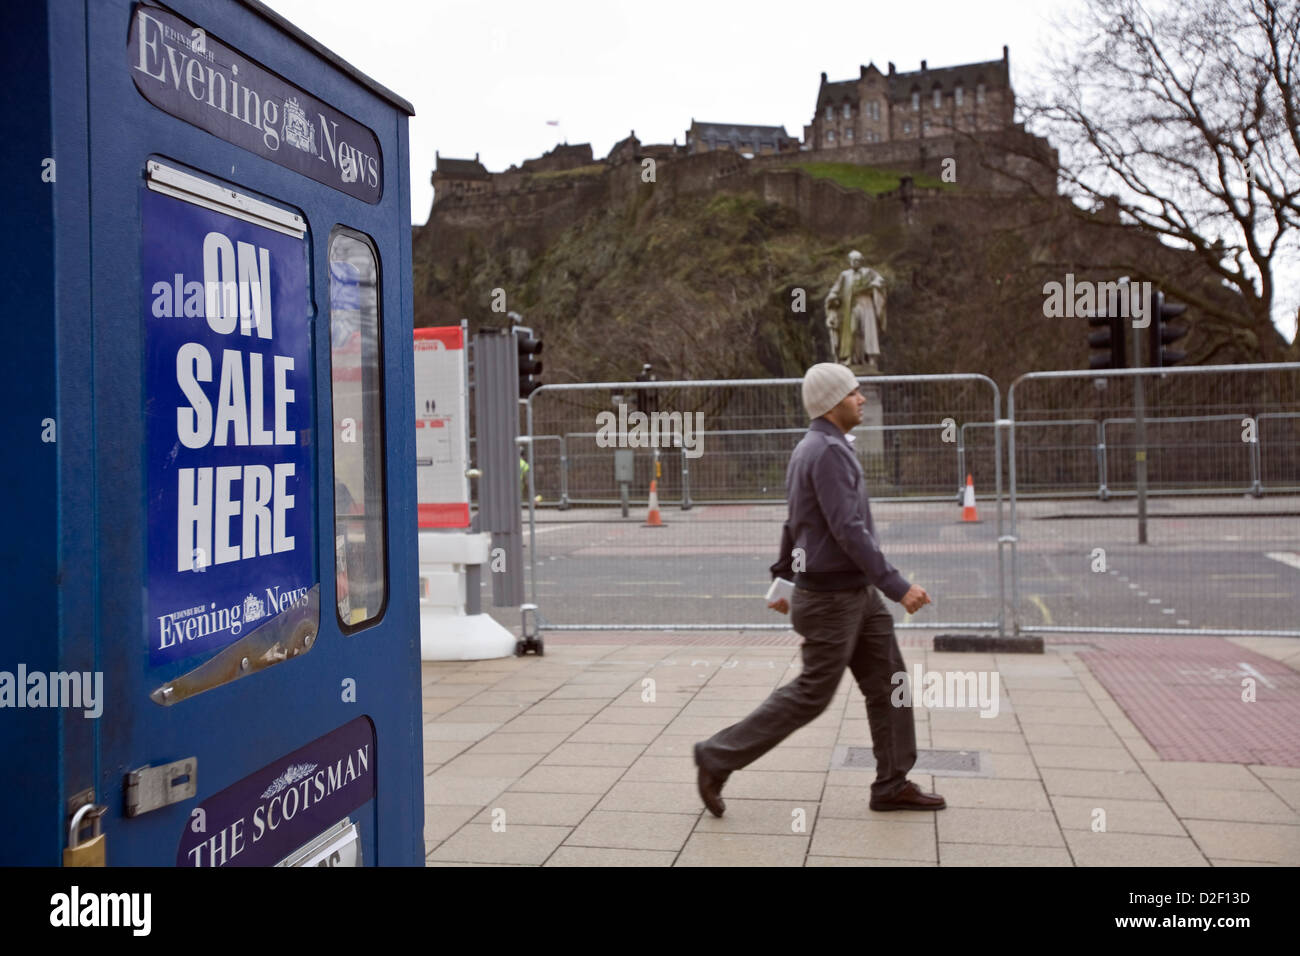 Vendor selling The Scotsman and Edinburgh Evening News newspapers from a booth on Princes Street, Edinburgh - Stock Image